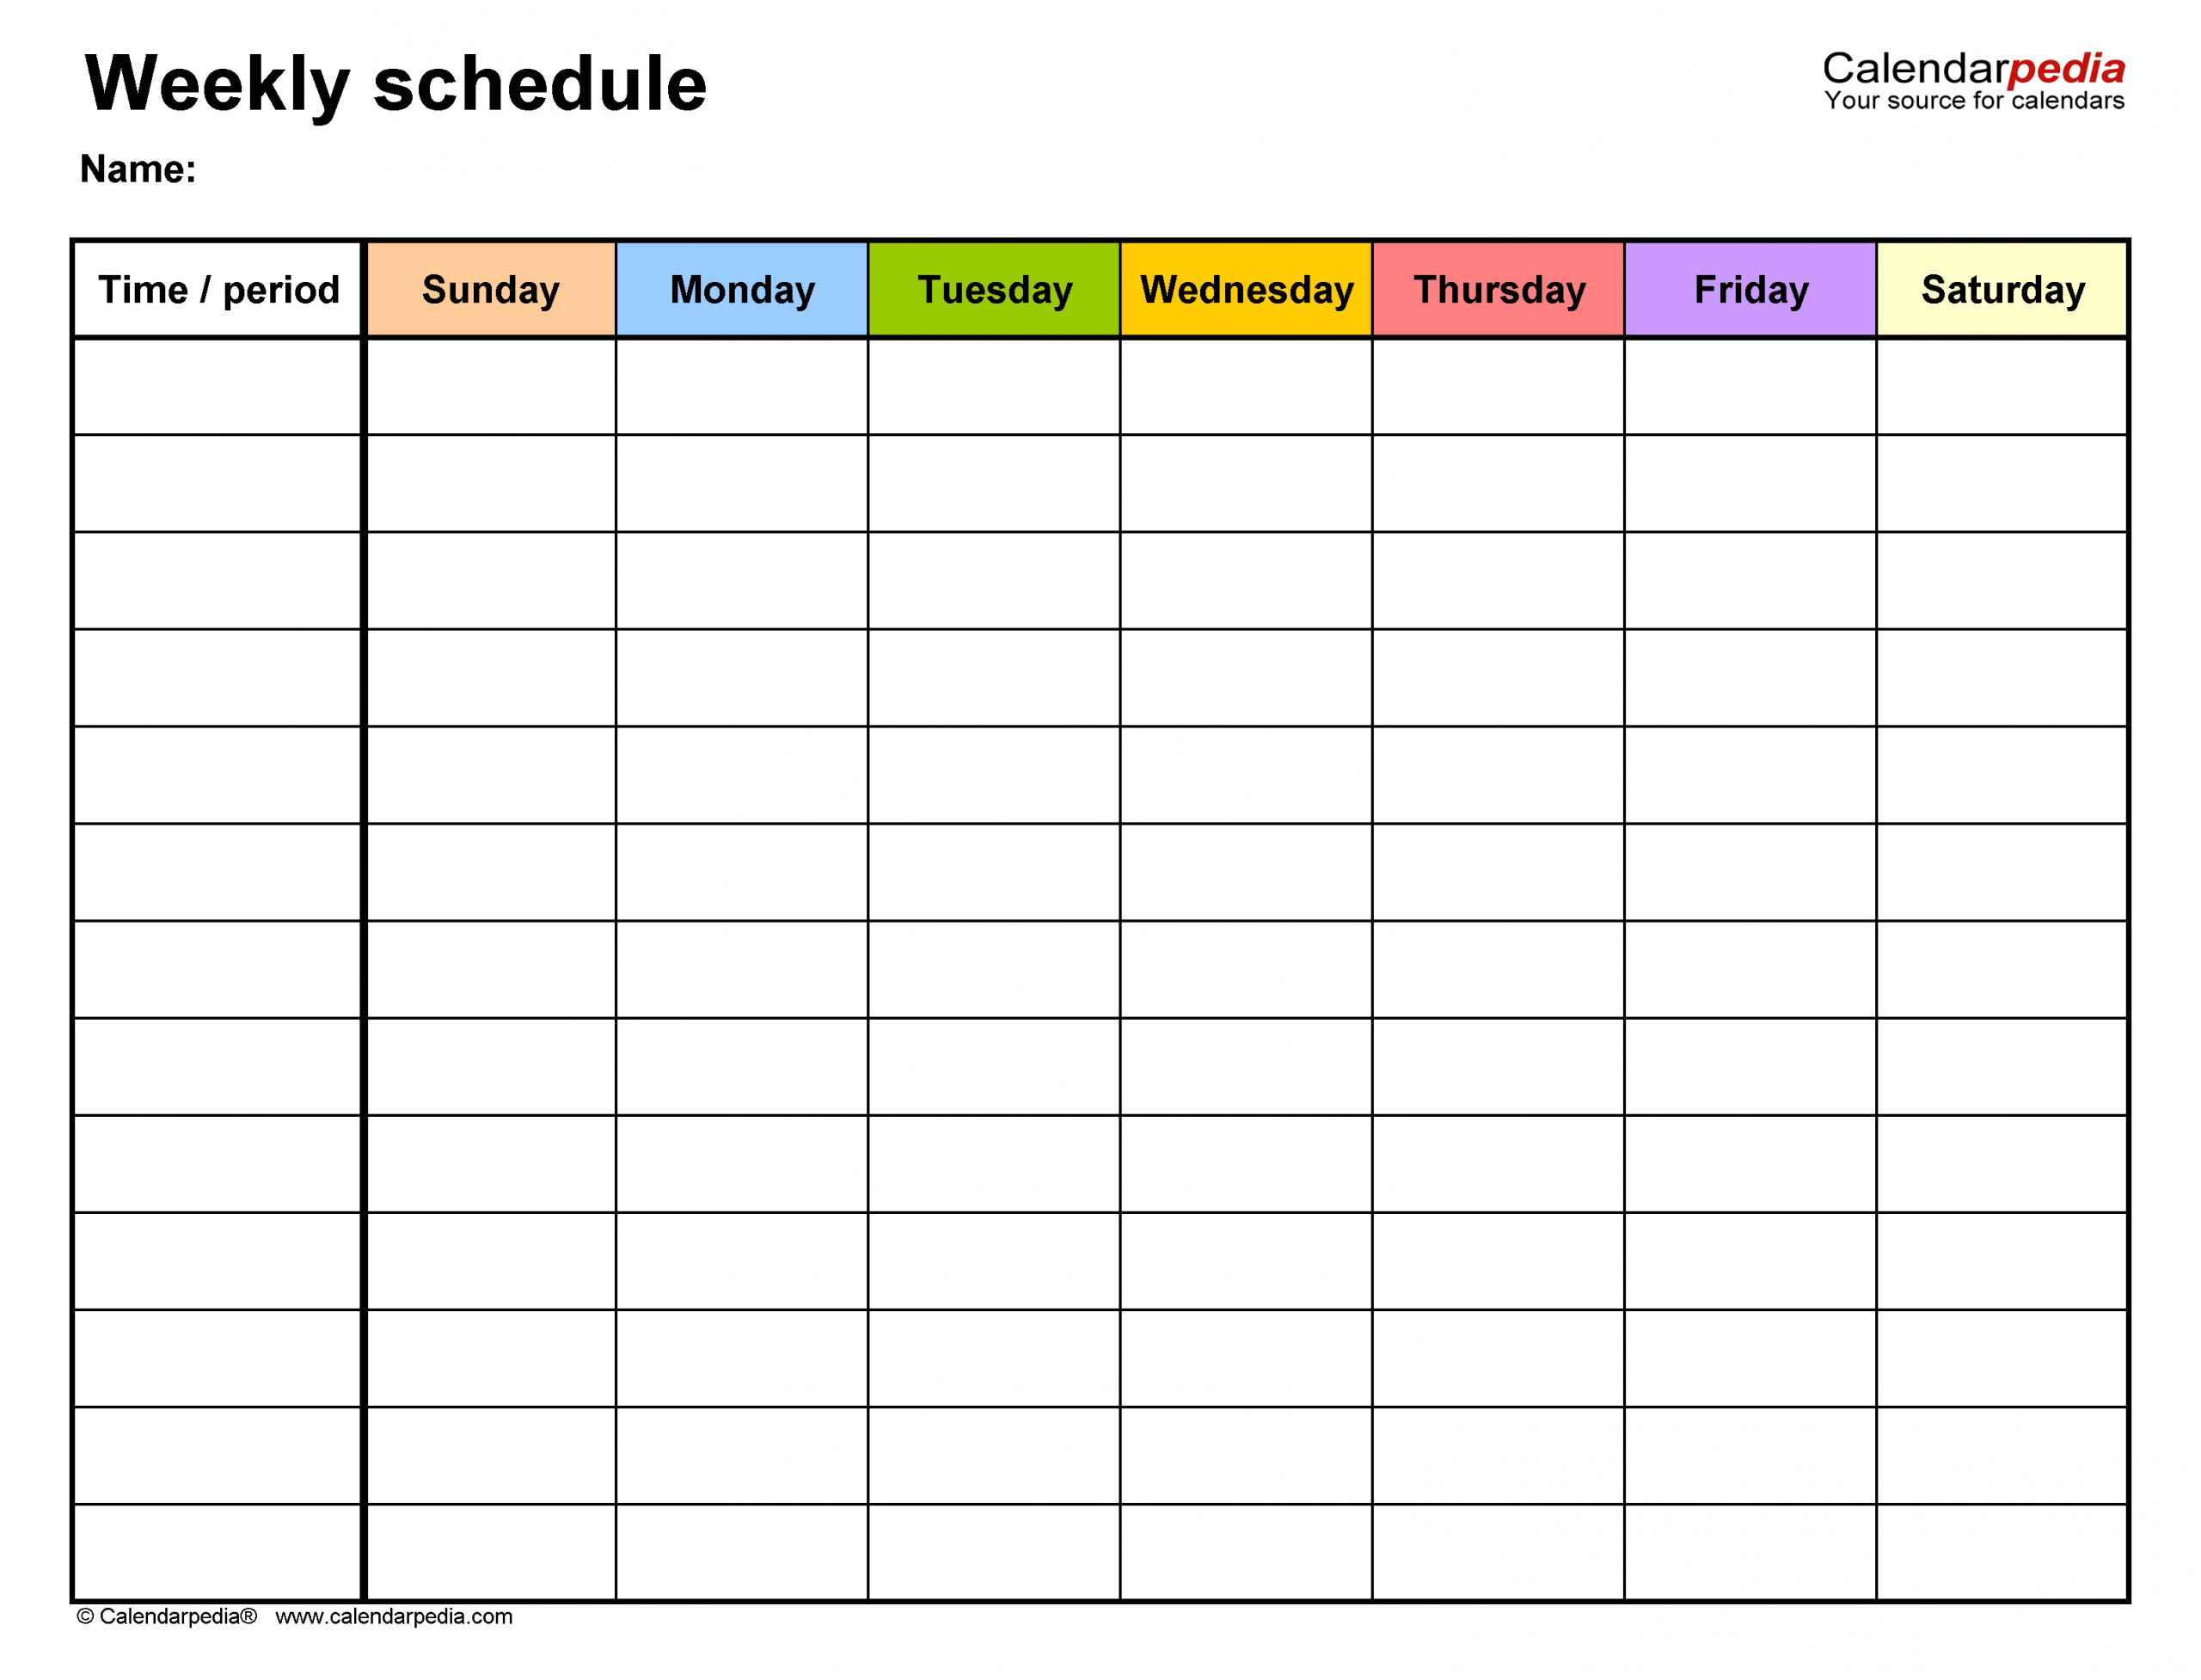 Collect Weekly Calendar With Times